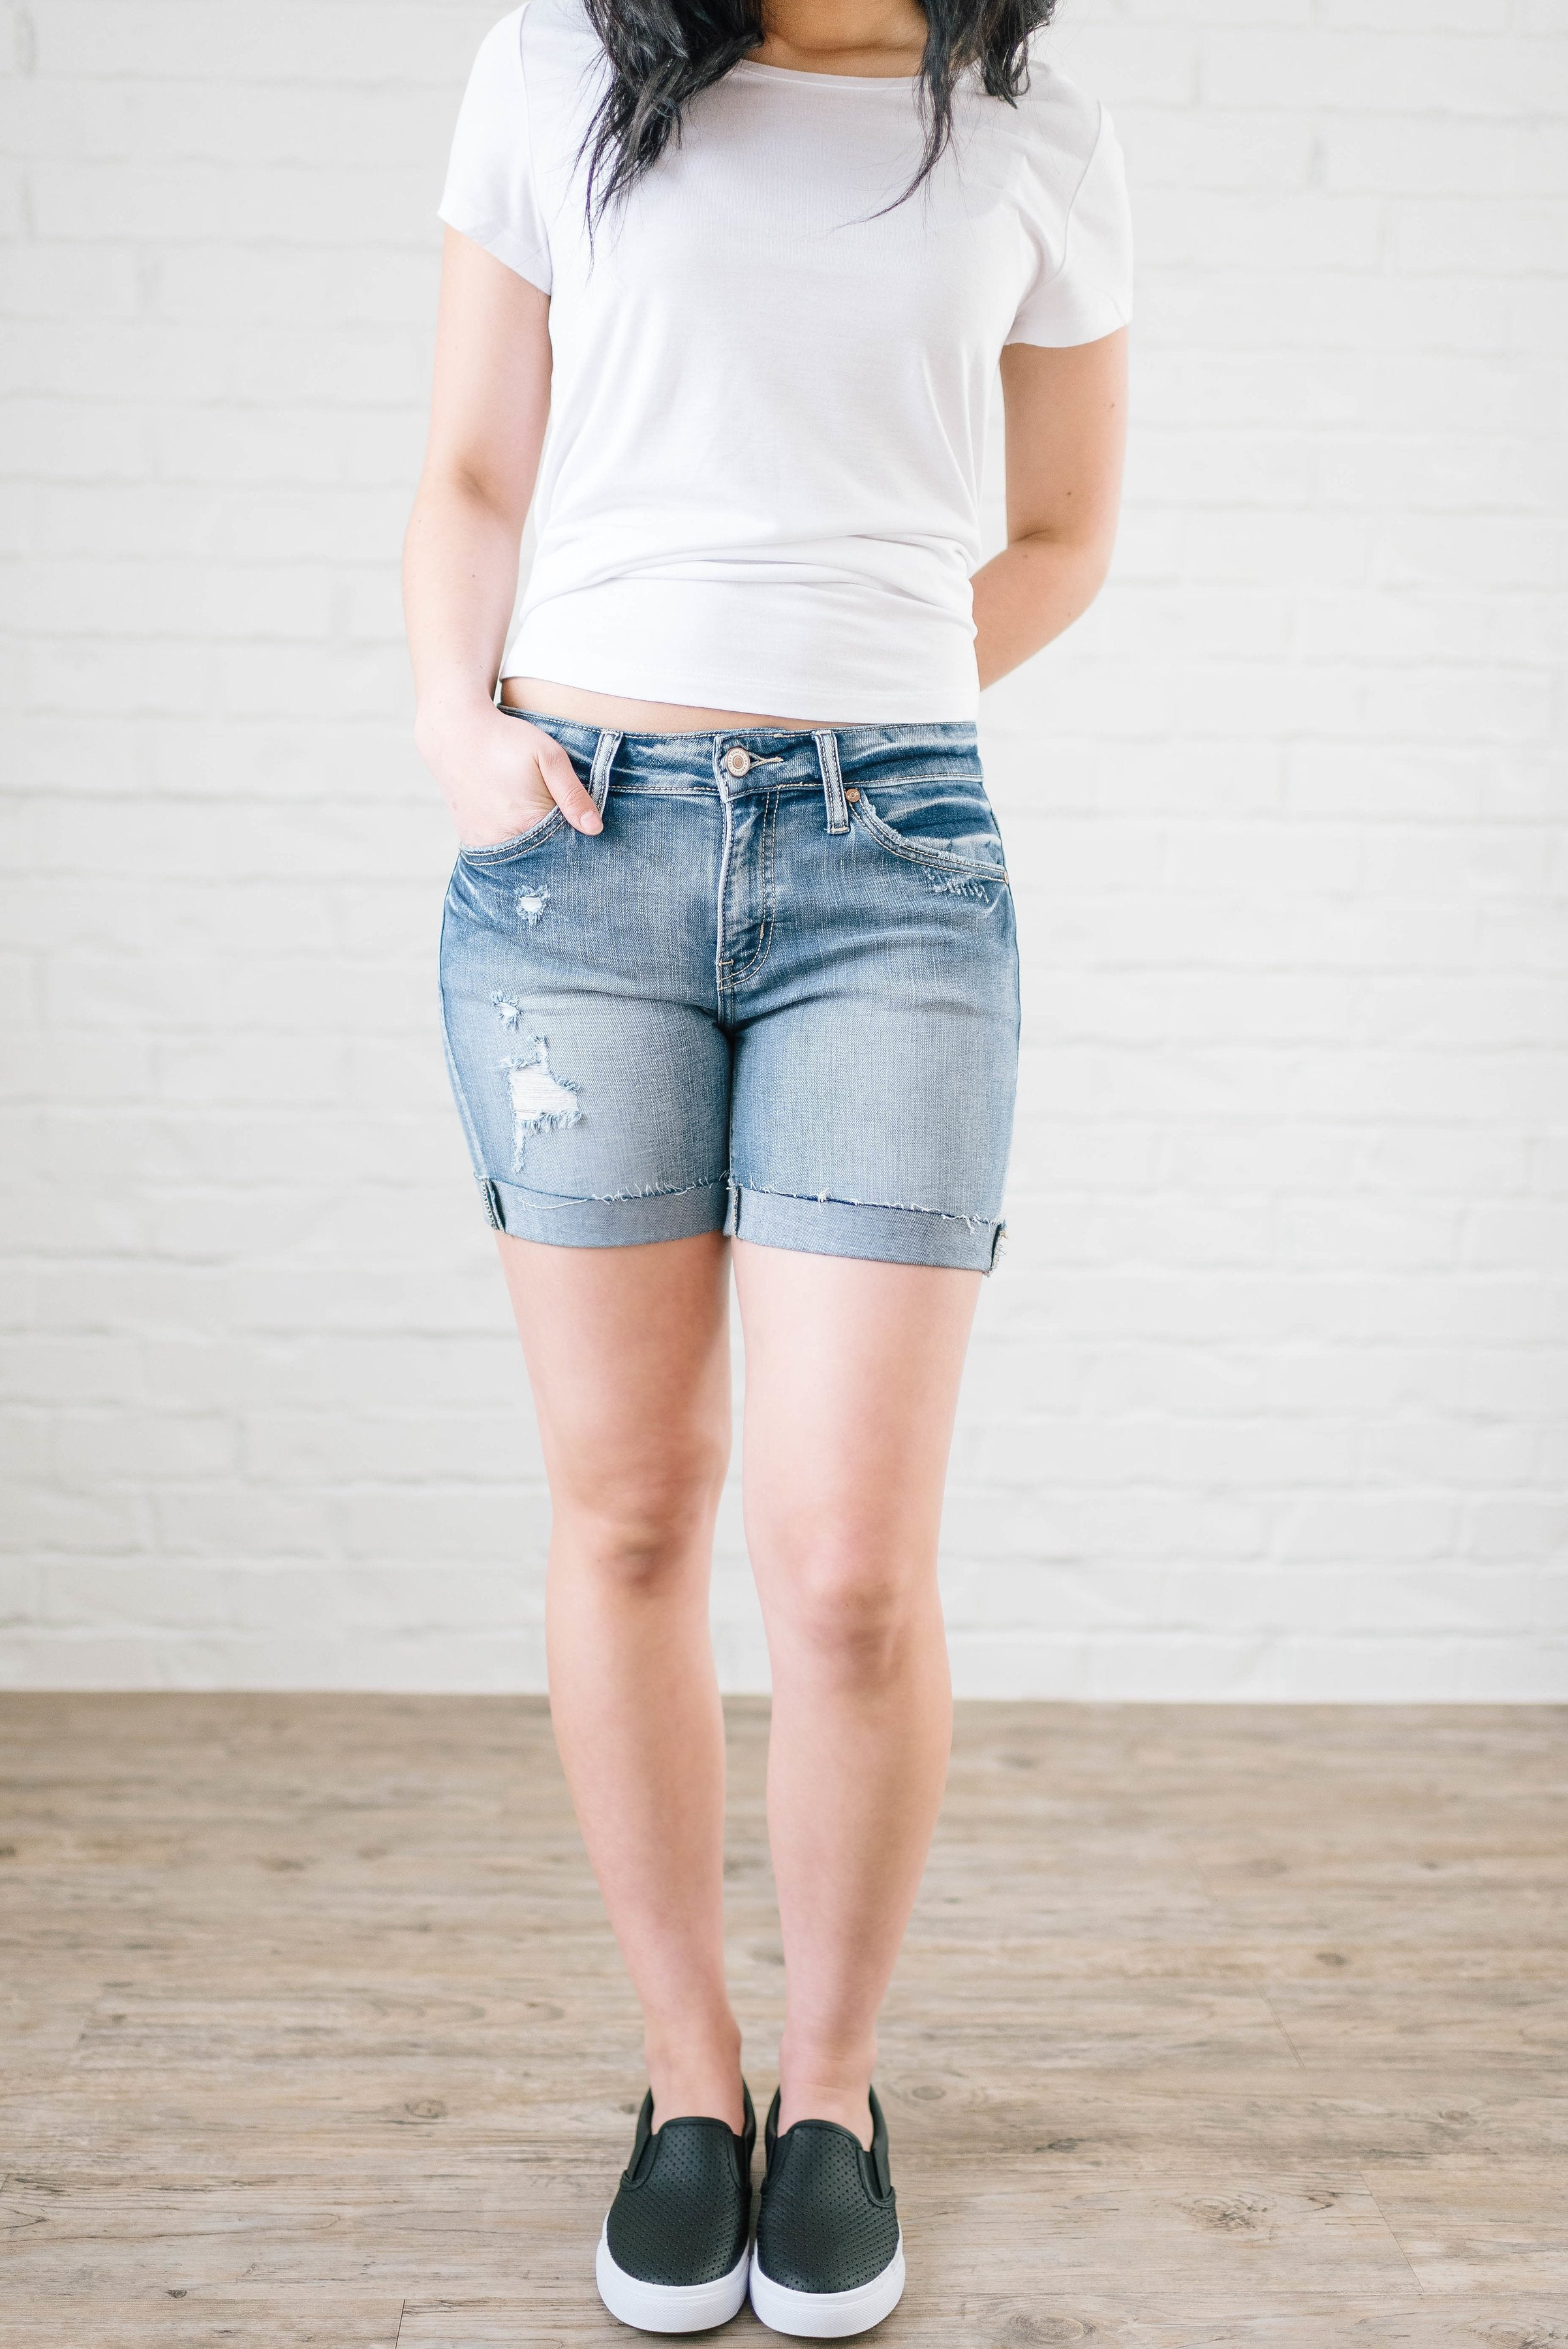 The Boardwalk Shorts